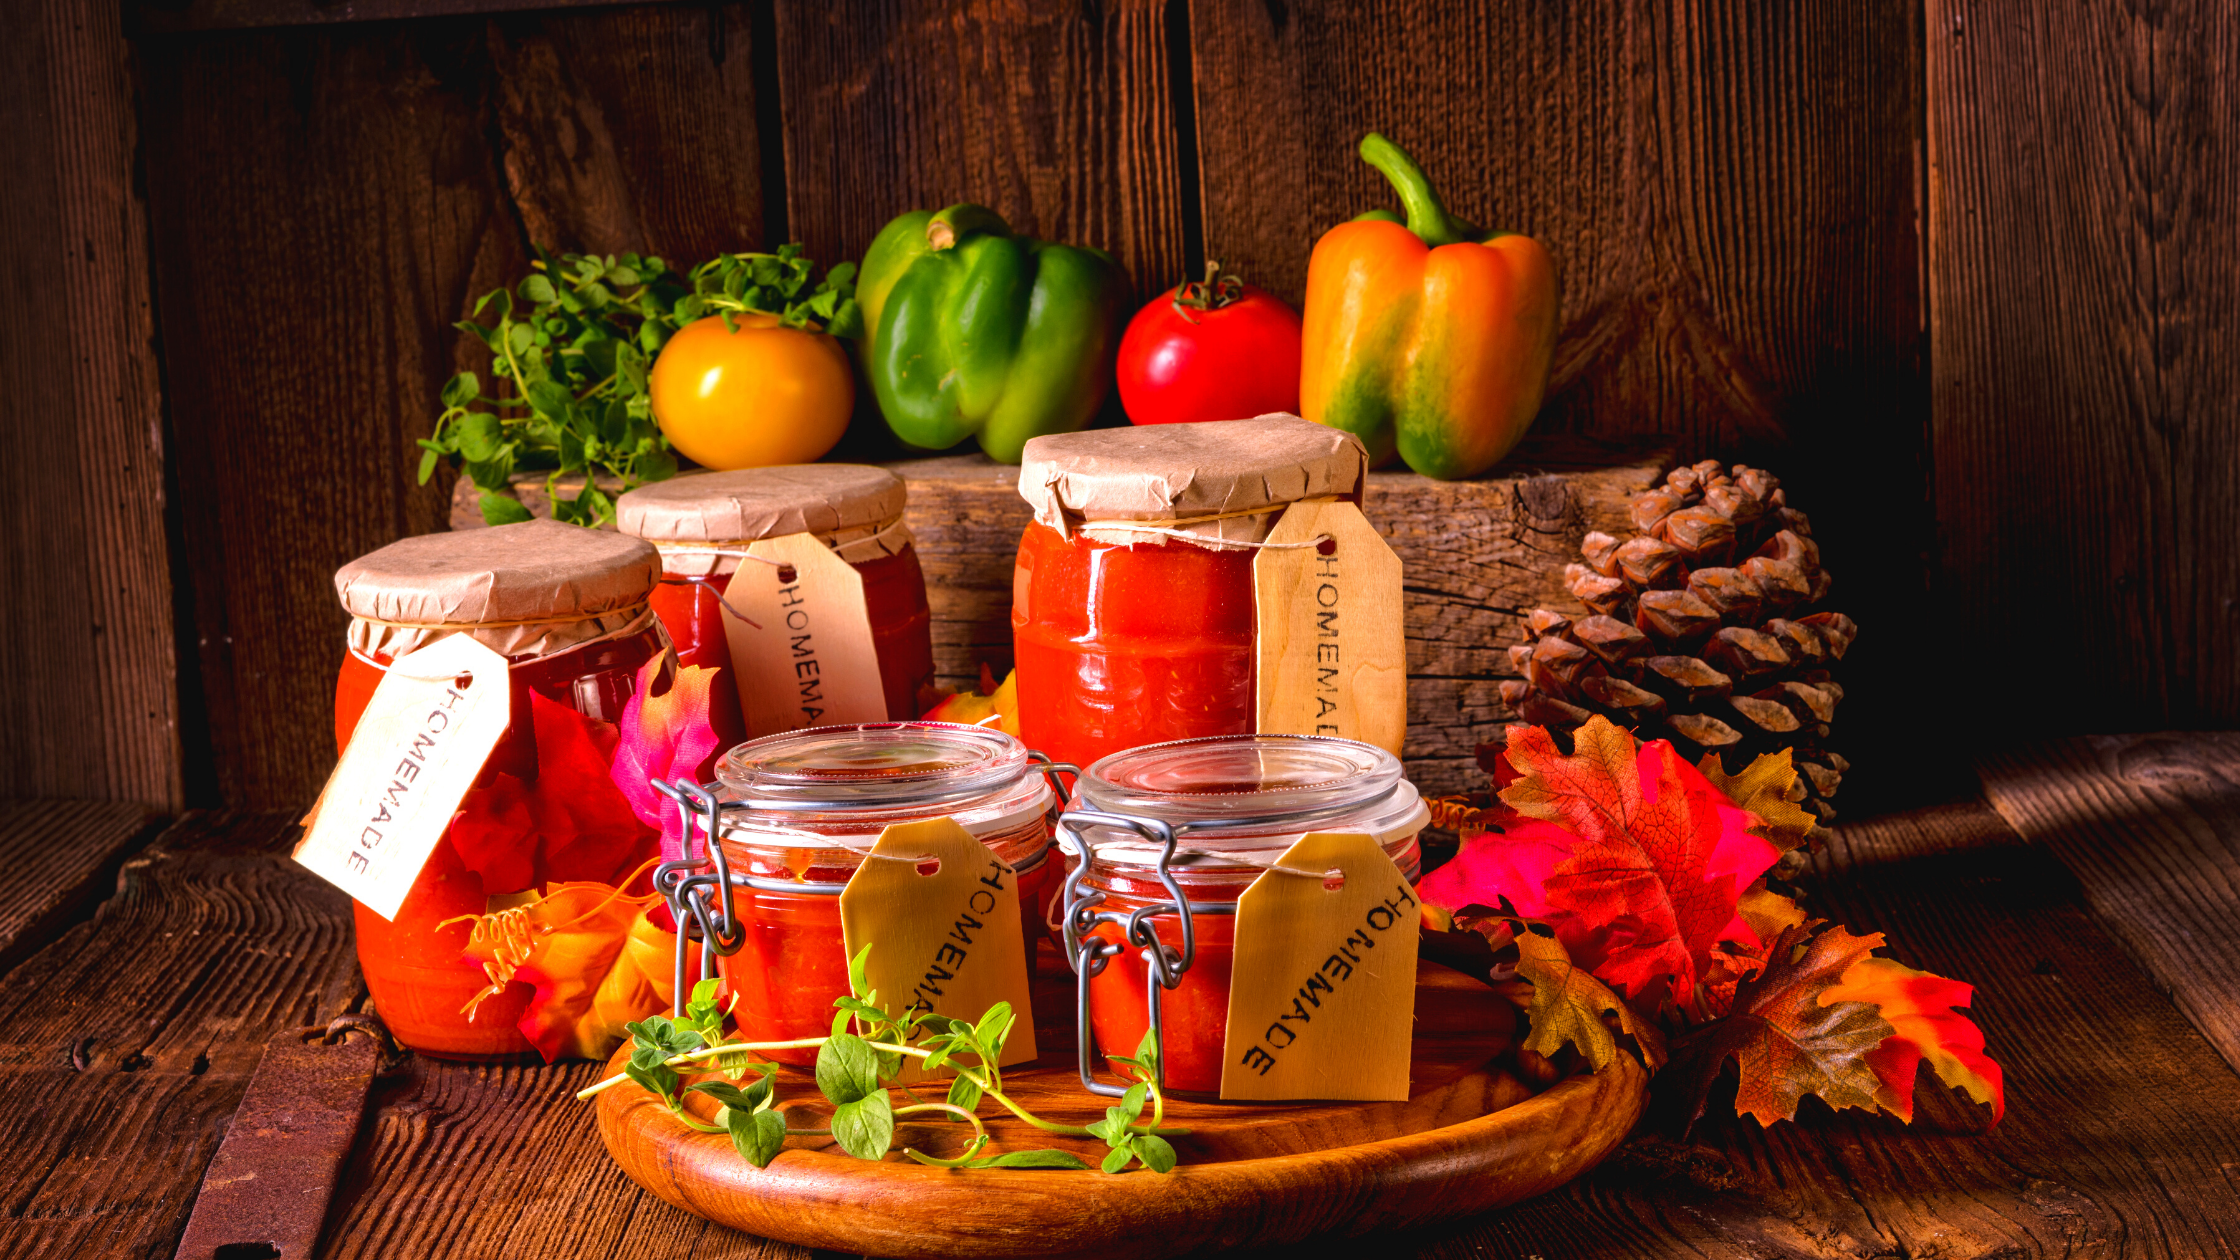 mason jars with vegetable jams